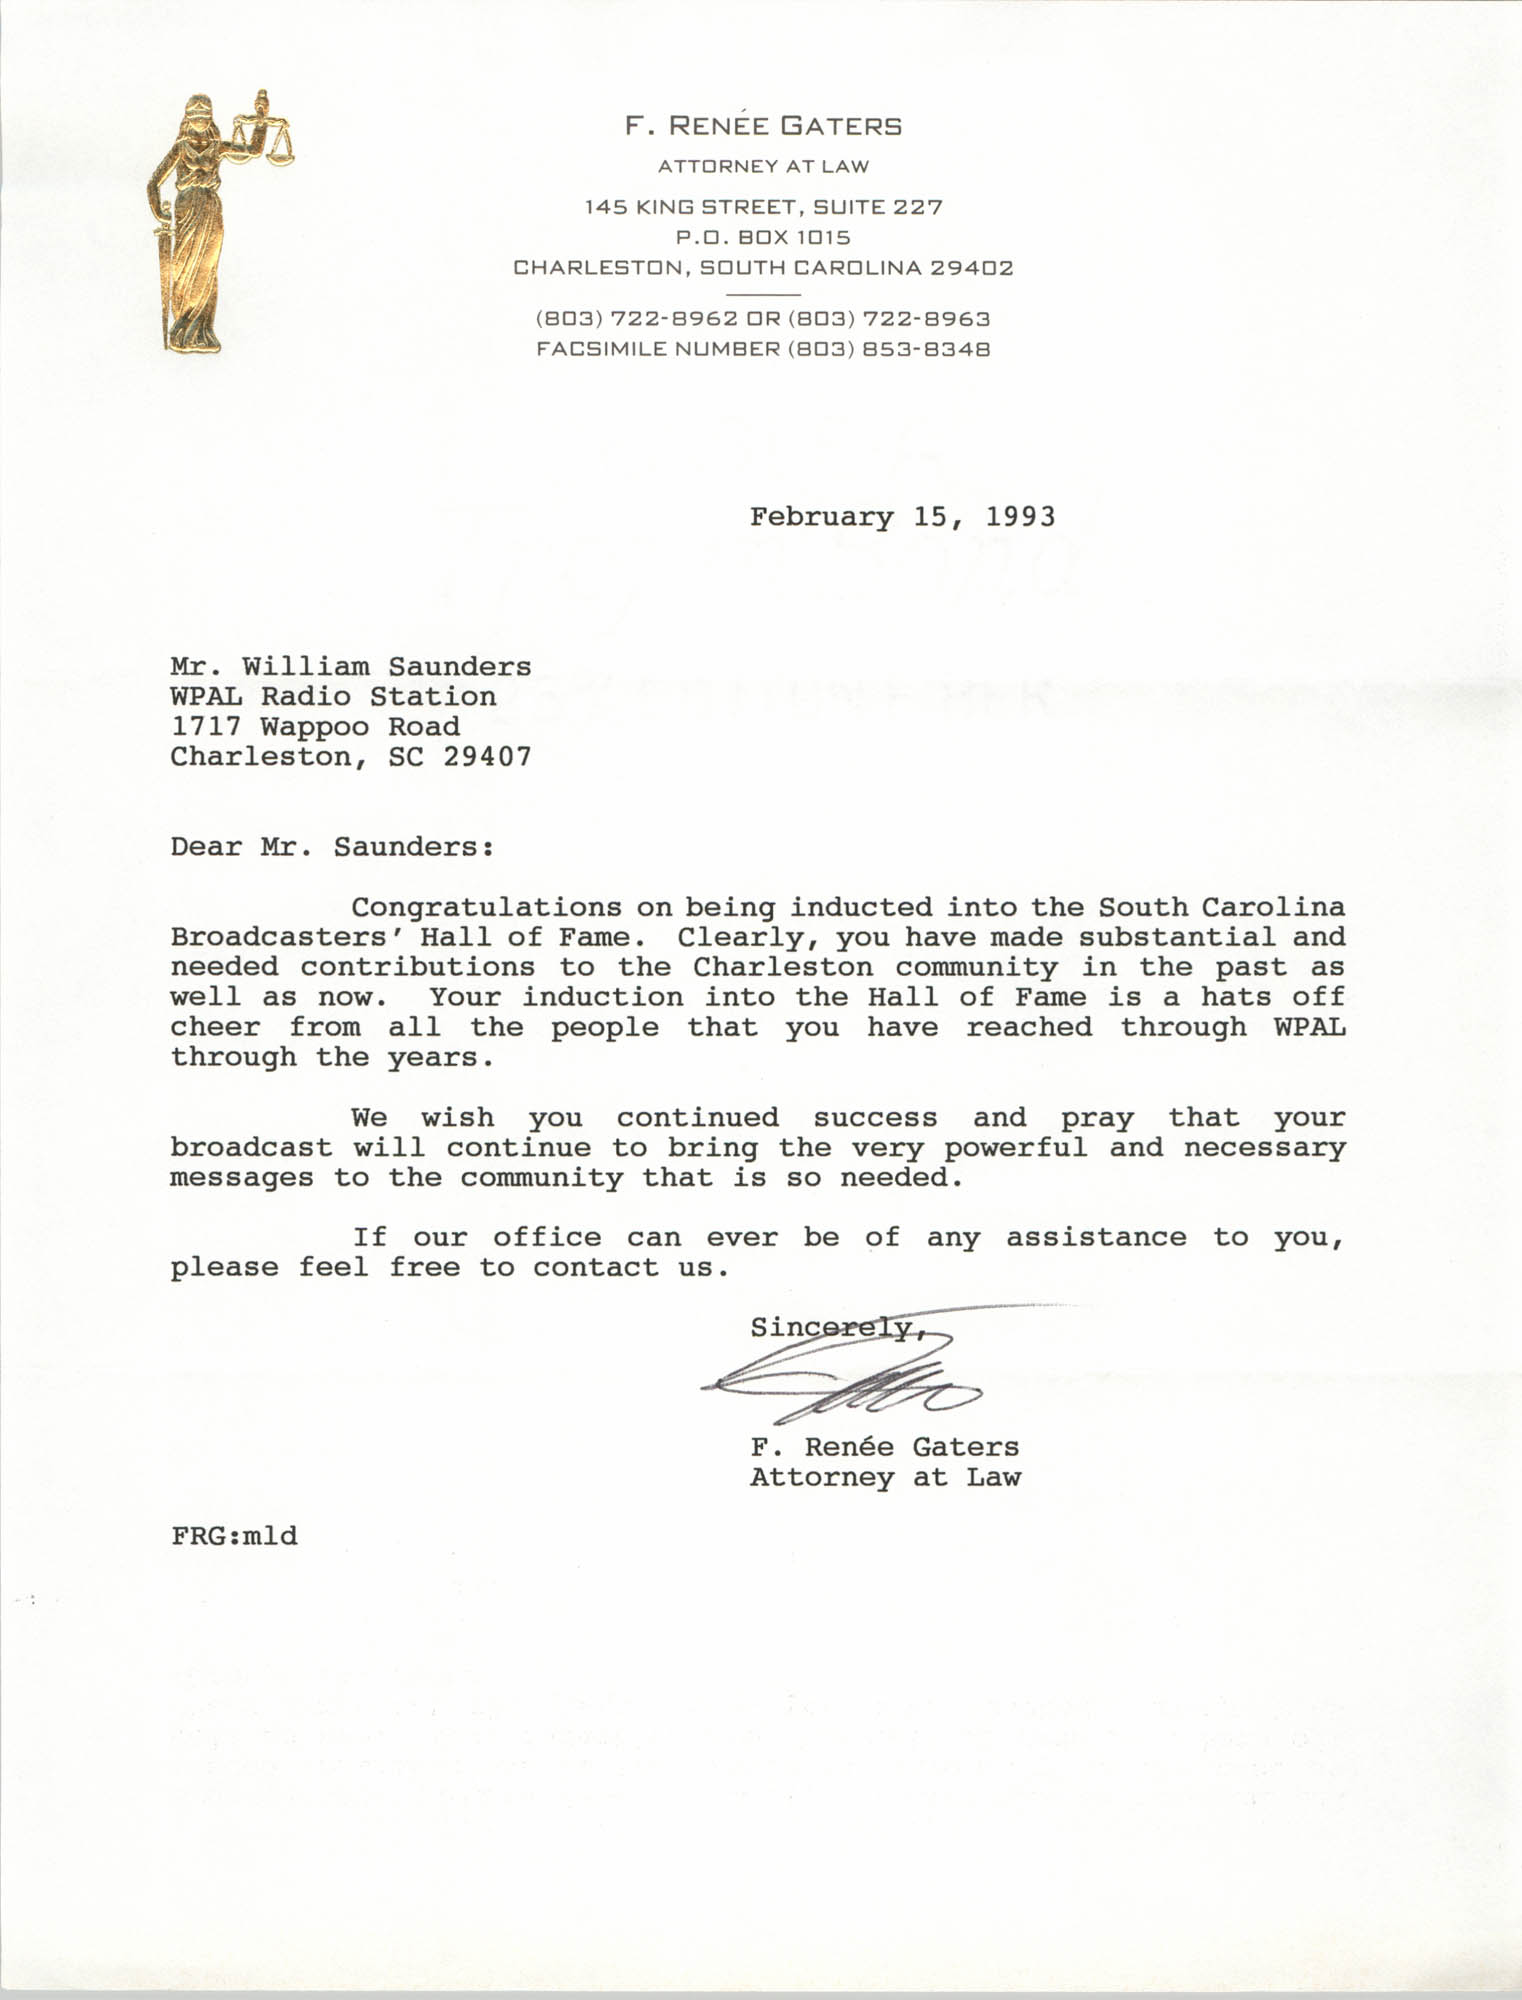 Letter from F. Renée Gaters to William Saunders, February 15, 1993